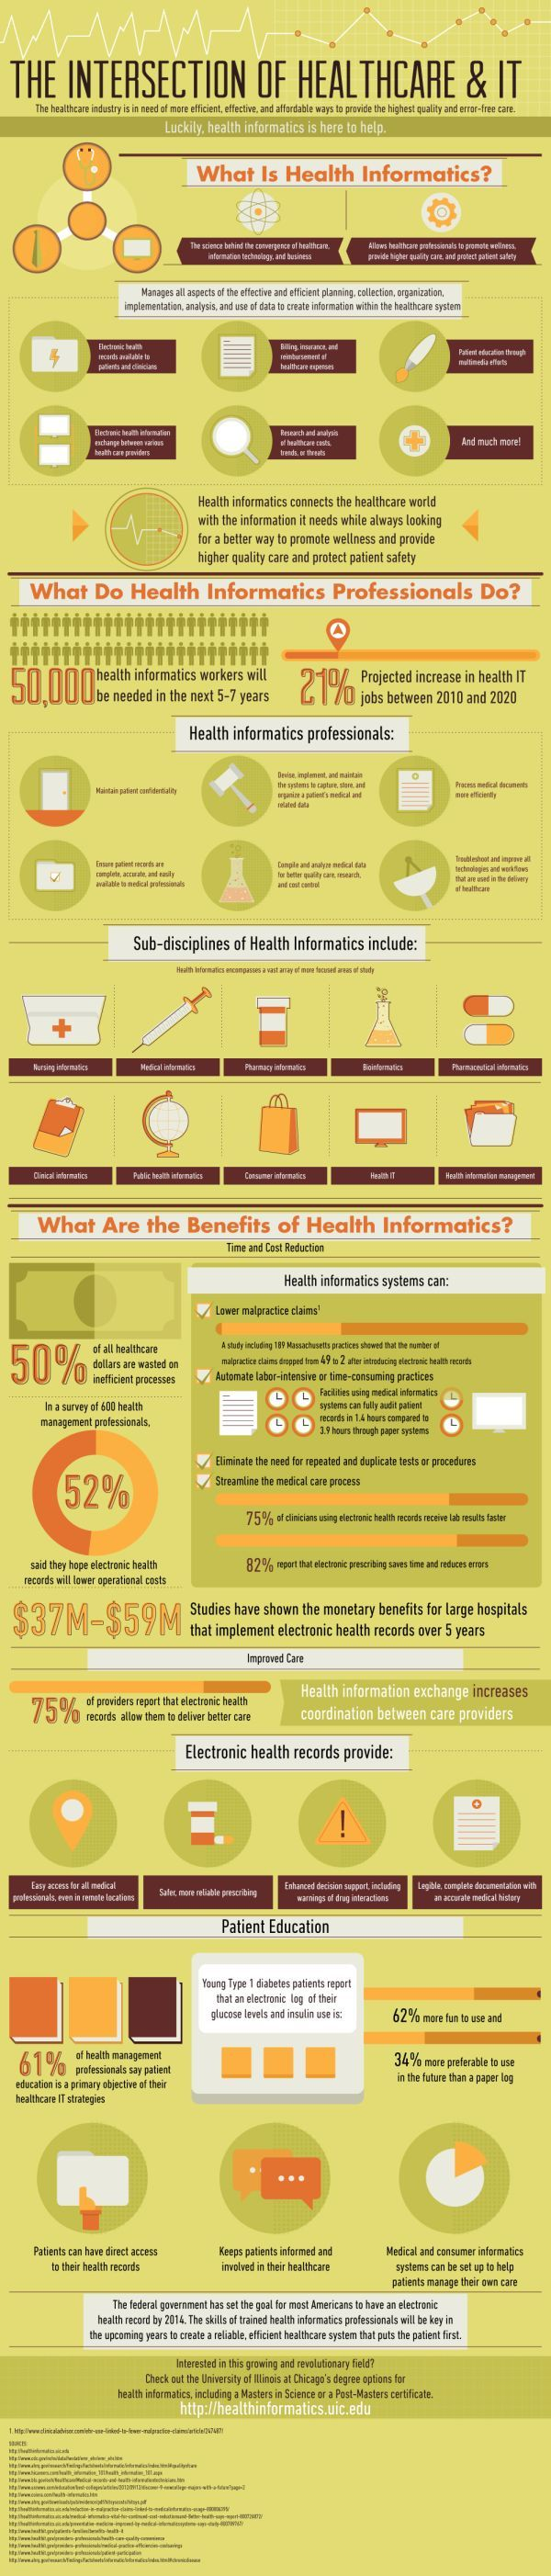 Infographic: What is health informatics? - Health informatics—it's a field where jobs are expected to grow more than 20 percent in the decade between 2010 and 2020. Wonder what workers in health informatics do? For example, electronic health records provide easy access for medical professionals, including those in remote areas. Patients benefit by being involved and informed in their health care. - www.healthcoverageally.com